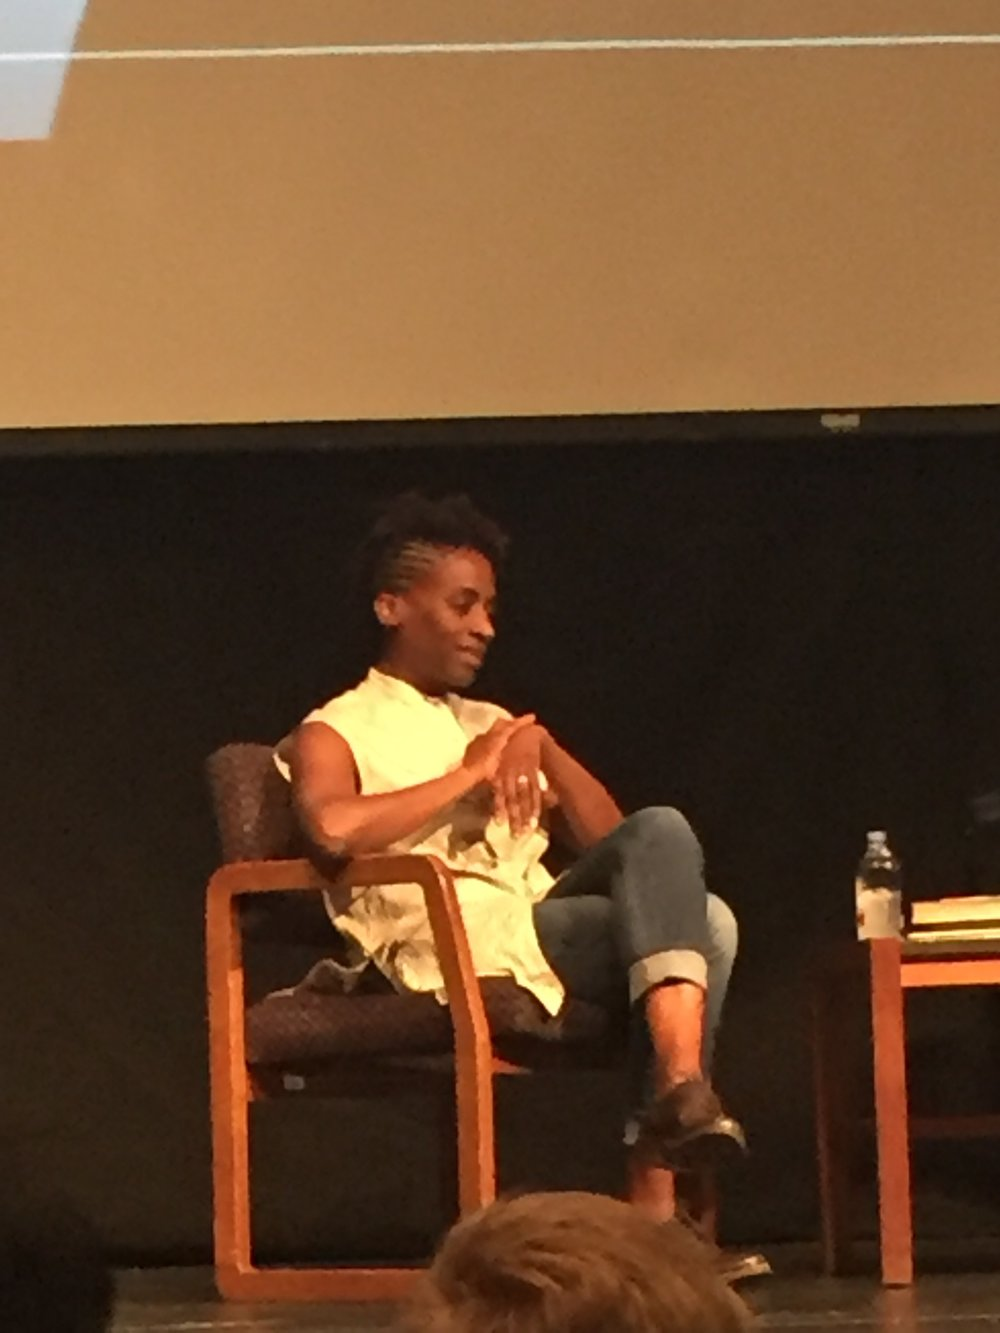 [image description: Jacqueline Woodson on stage at the event. She's a tall, slender black woman in cuff jeans, a cream colored tunic, and brown dress shoes. She's sitting in a wooden chair with her legs crossed and hands together.]